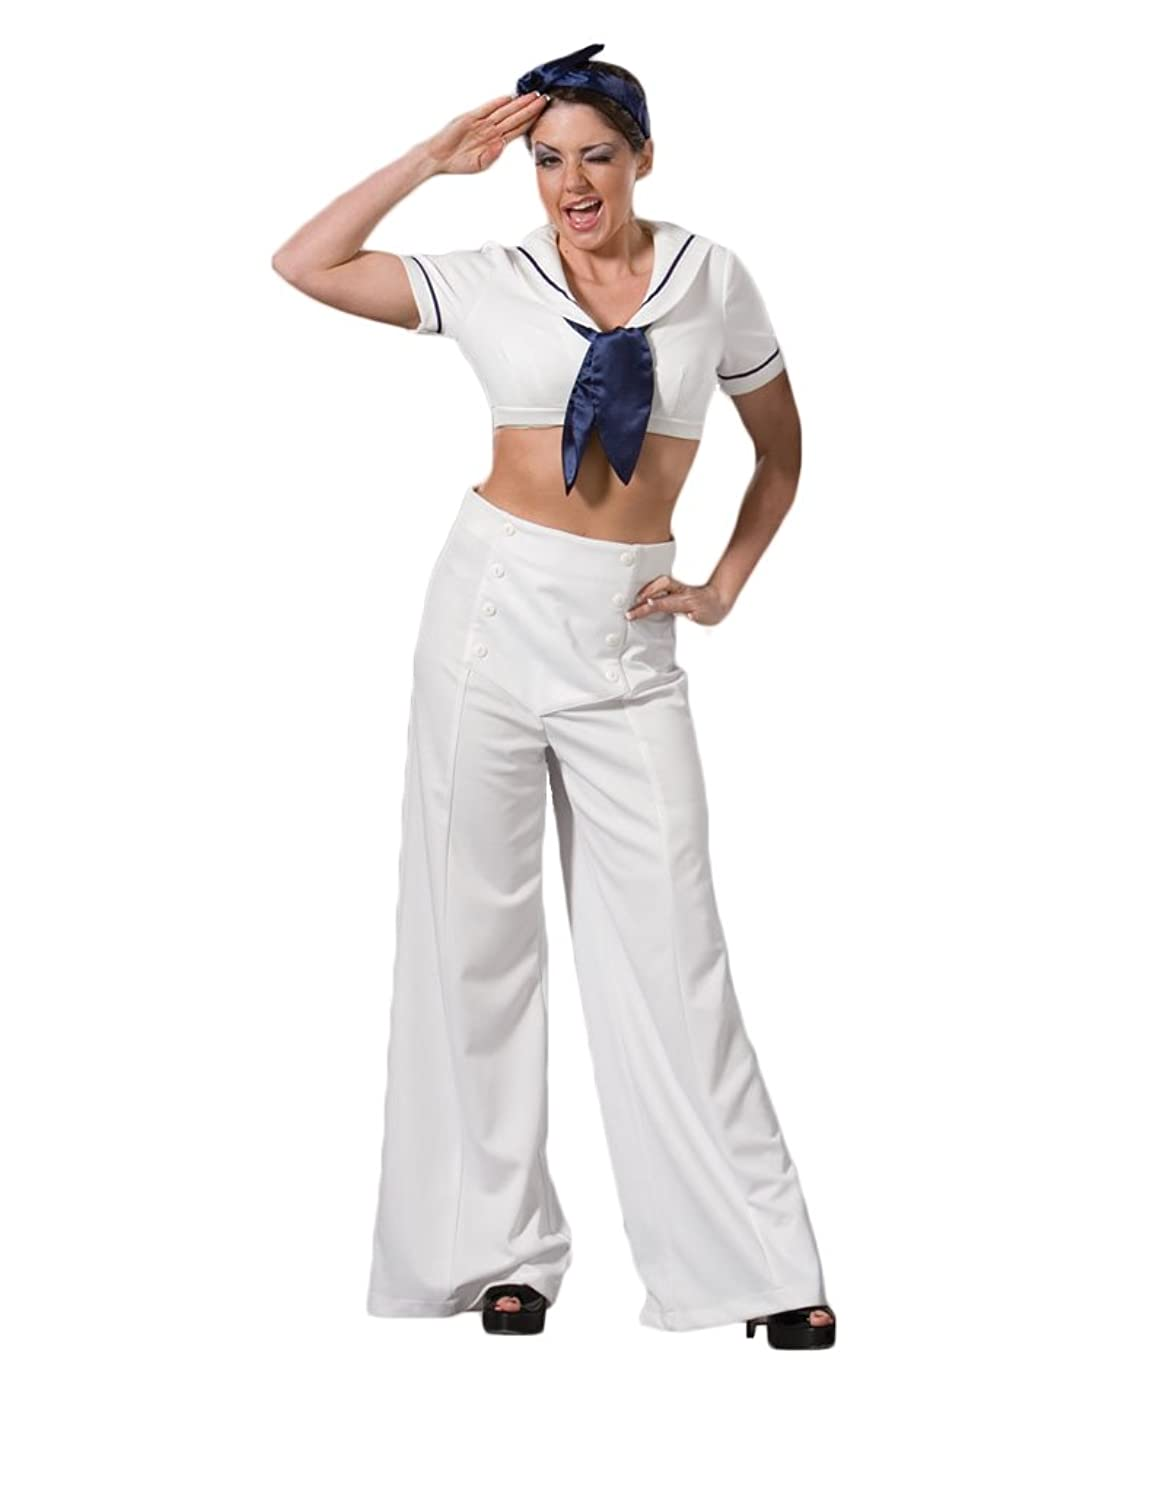 1940s Costumes- WW2, Nurse, Pinup, Rosie the Riveter Navy Sailor World War II Pin-Up Girl Theater Costume $149.99 AT vintagedancer.com